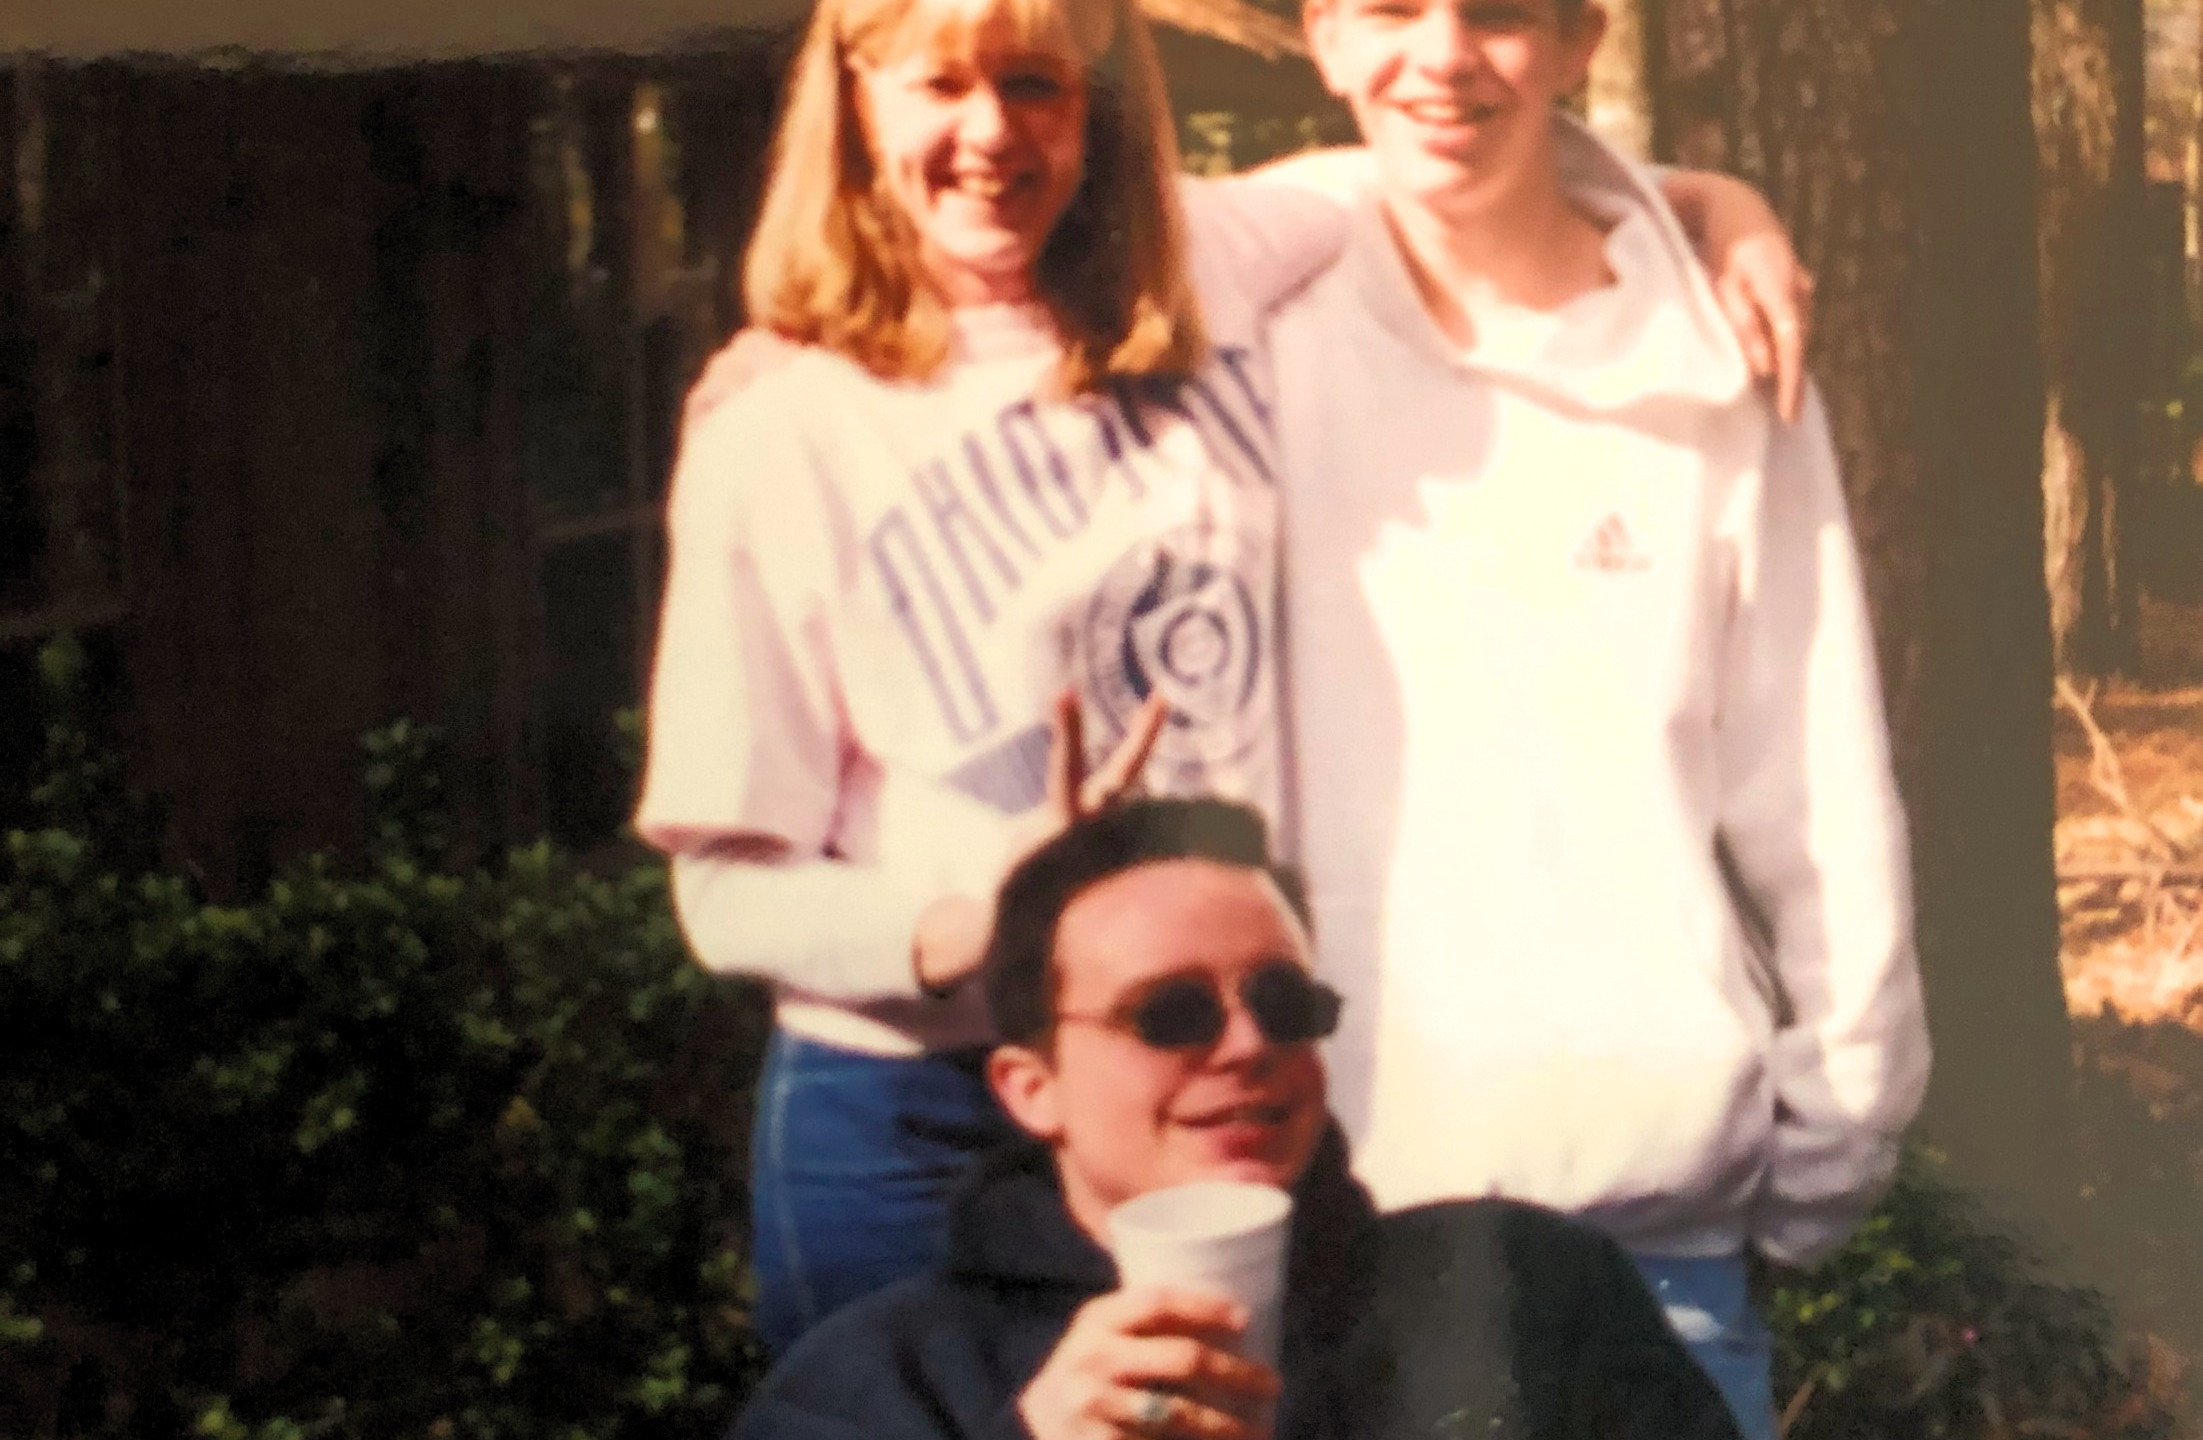 My mom, Jeremy, and Bob. All three are gone. Give a group hug for me up there.